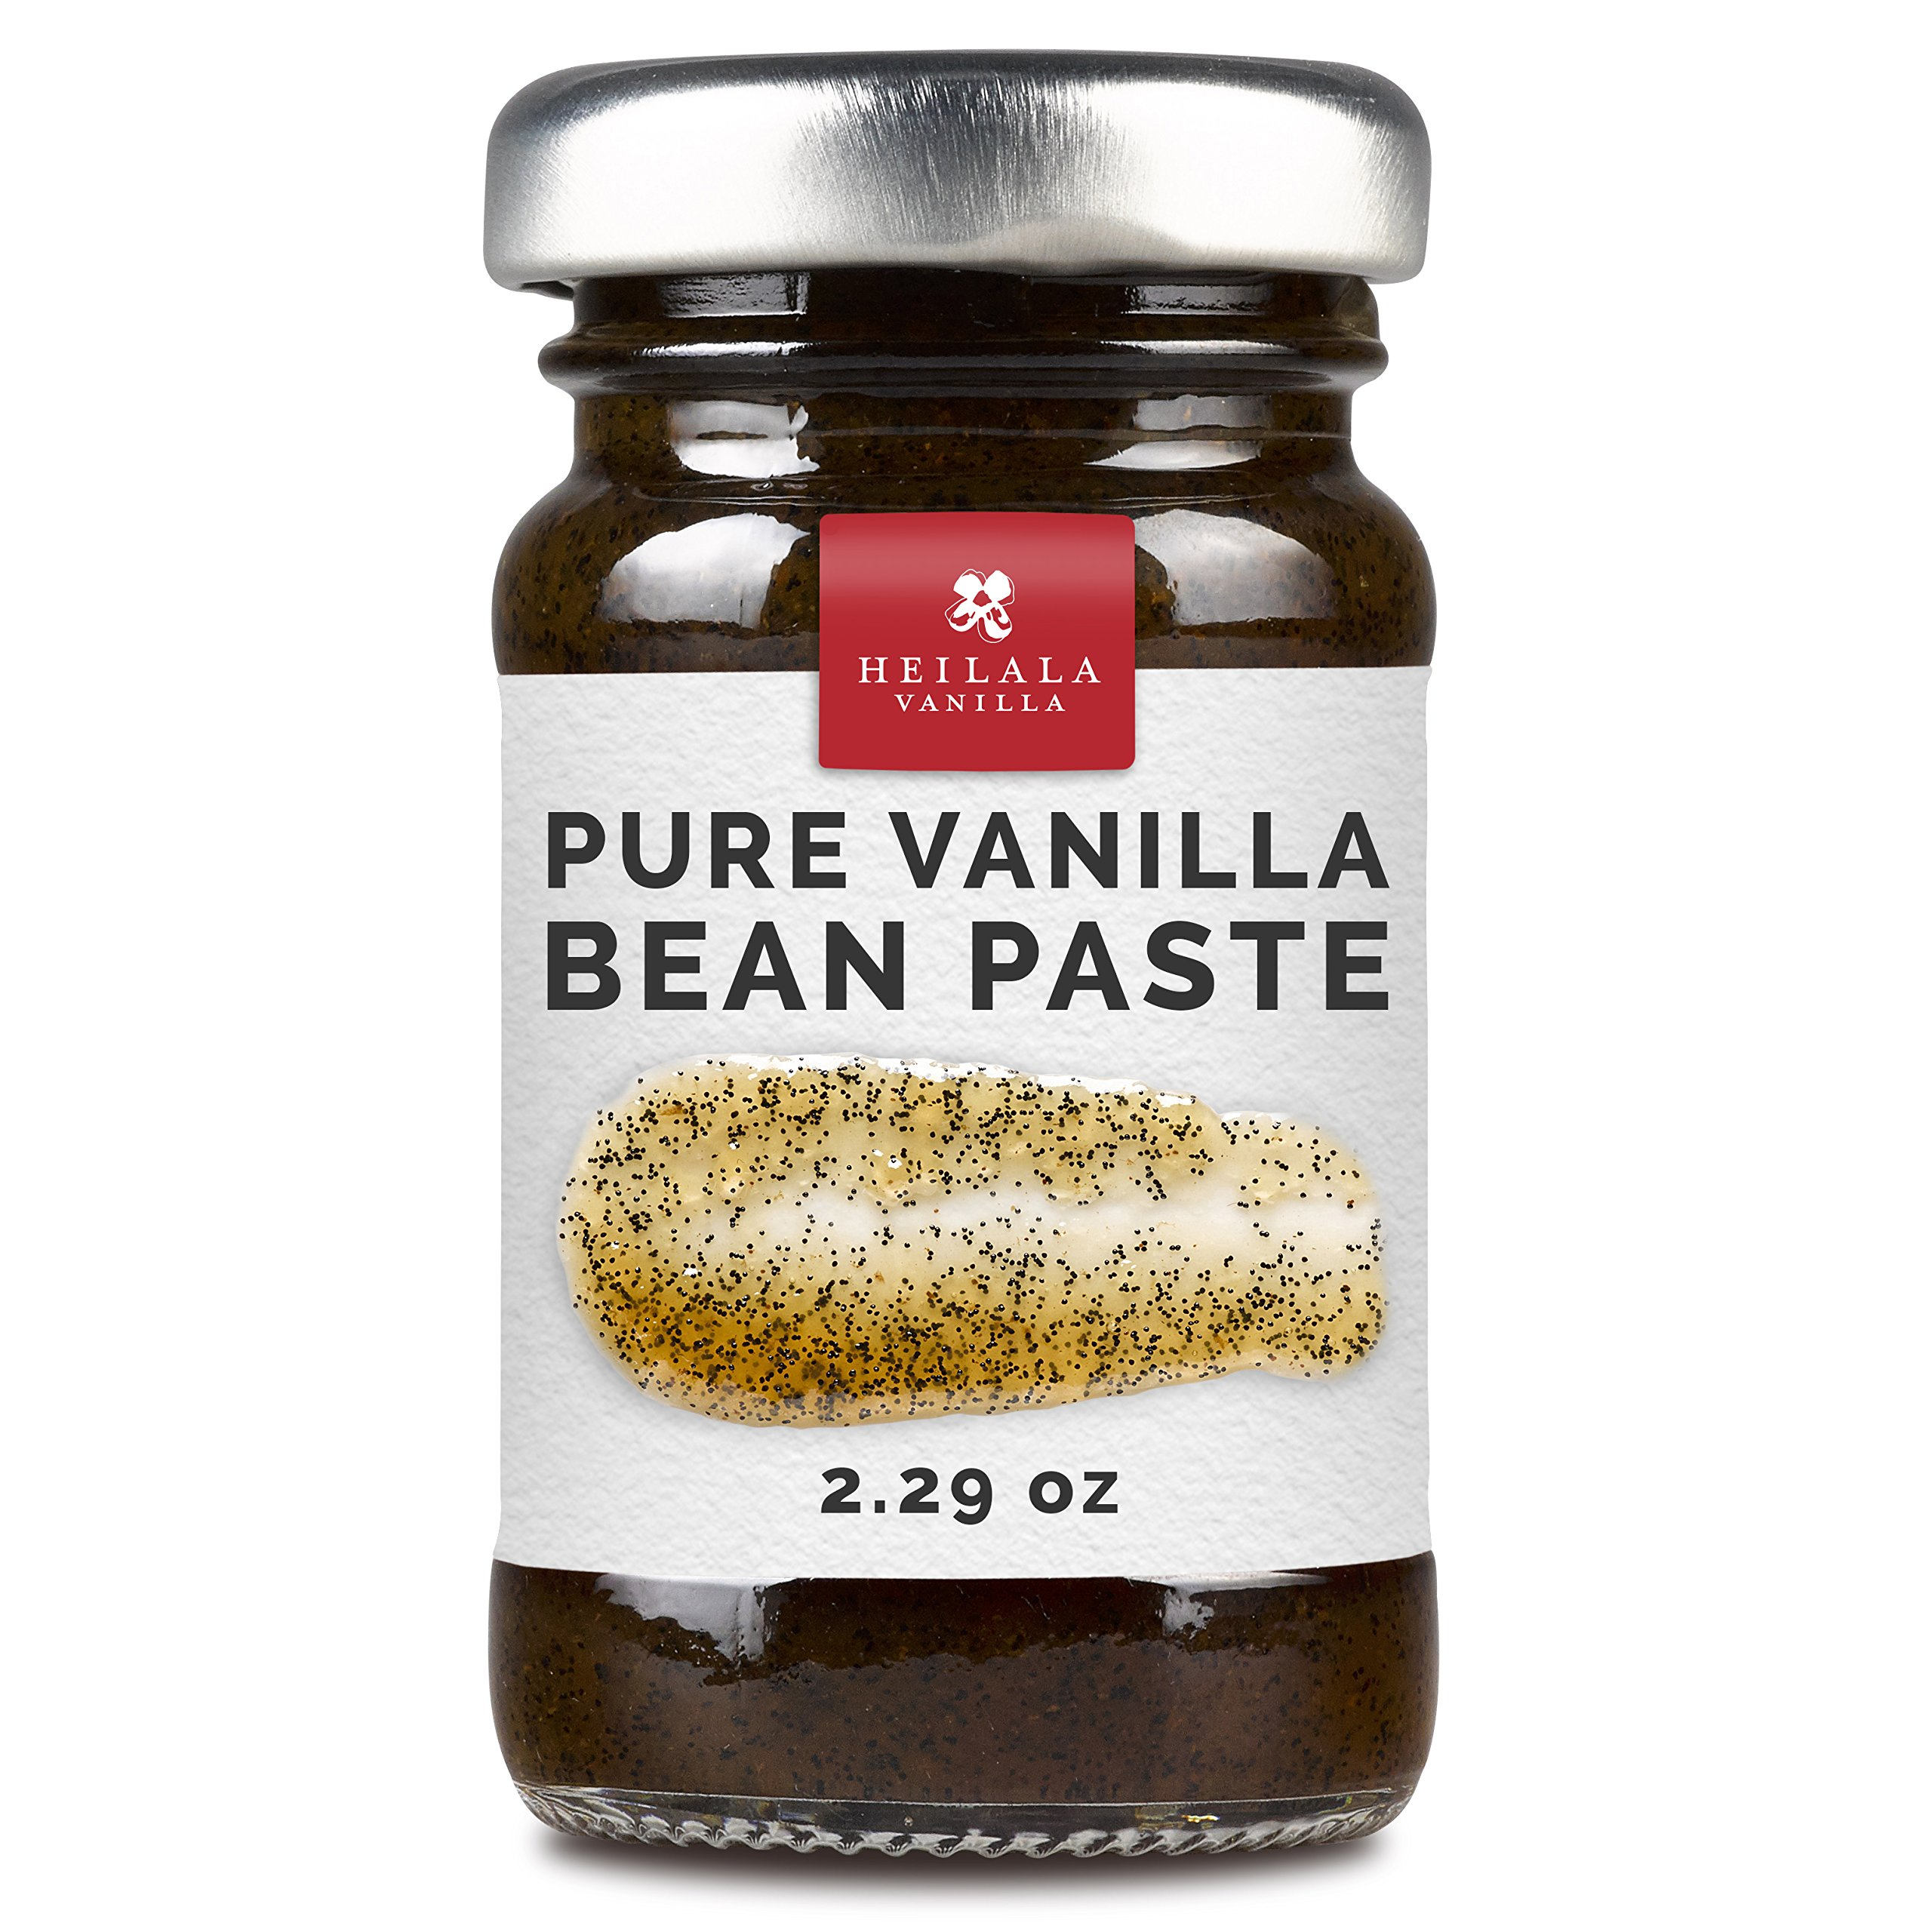 Gourmet Pure Vanilla Bean Pastes - Organically Grown, Contains Whole Vanilla Seeds from Hand Picked Vanilla Pods, All Natural, Superior to Tahitian, Mexican or Madagascar Paste